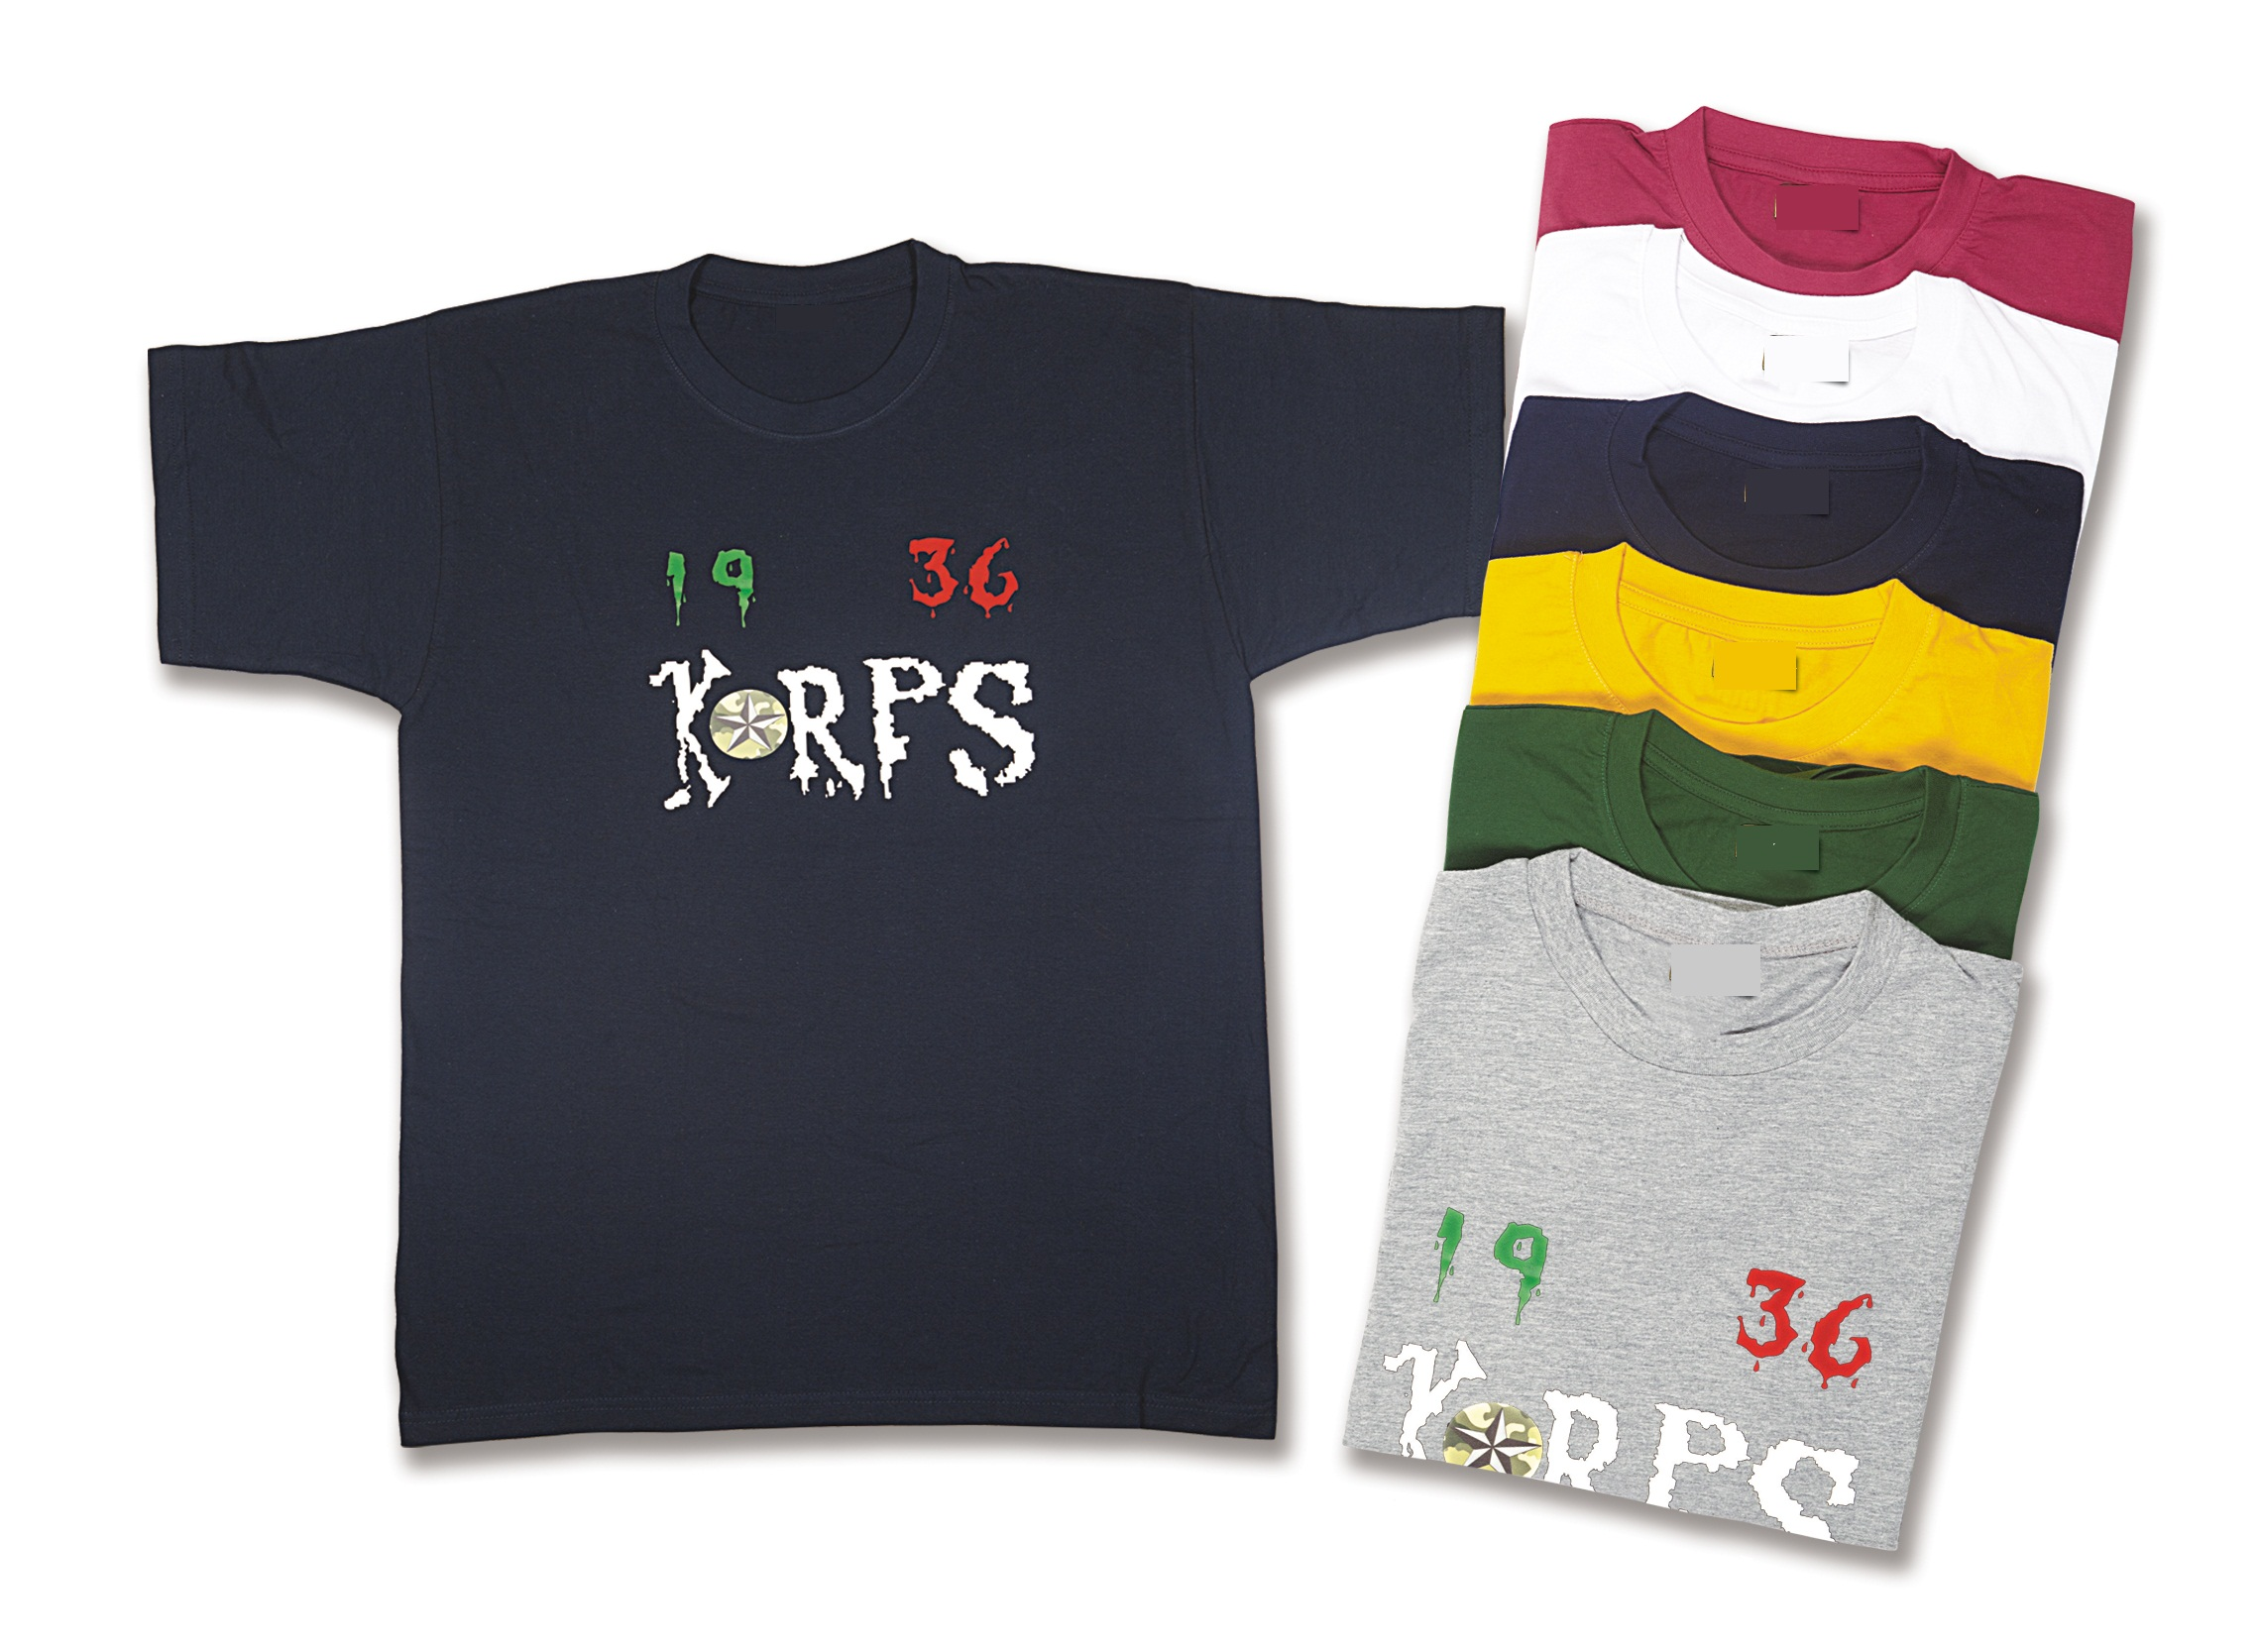 TShirt Softair Korps in cotone con stampe Made in Italy 1936 KORPS